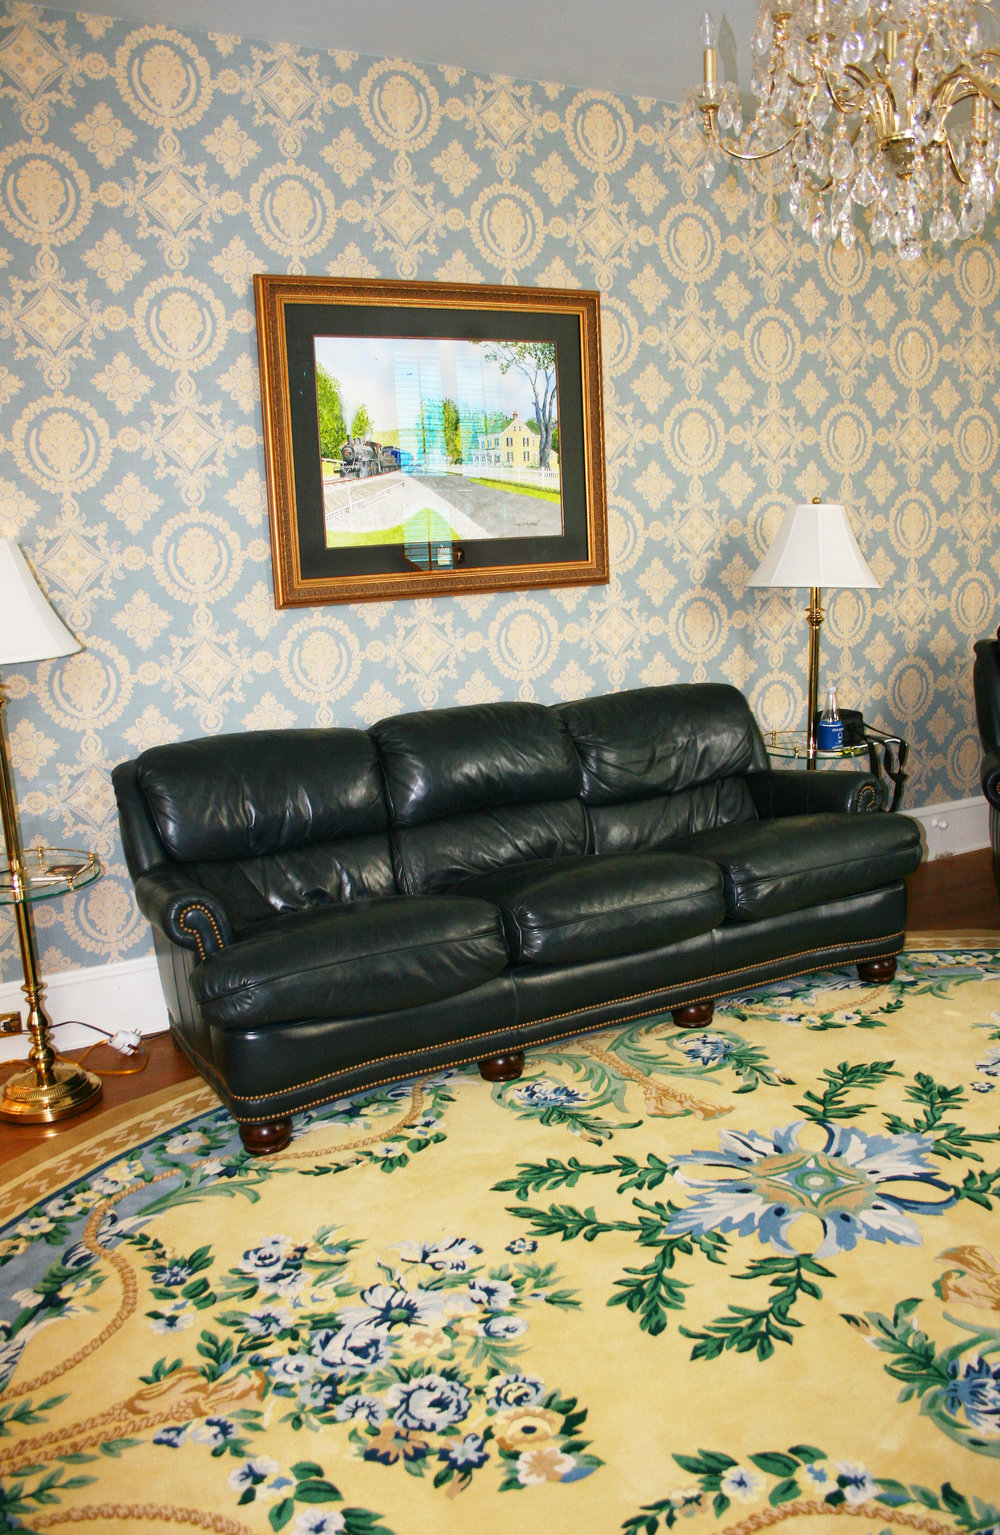 Custom design wool oval rug to coordinate with the elegant wallpaper